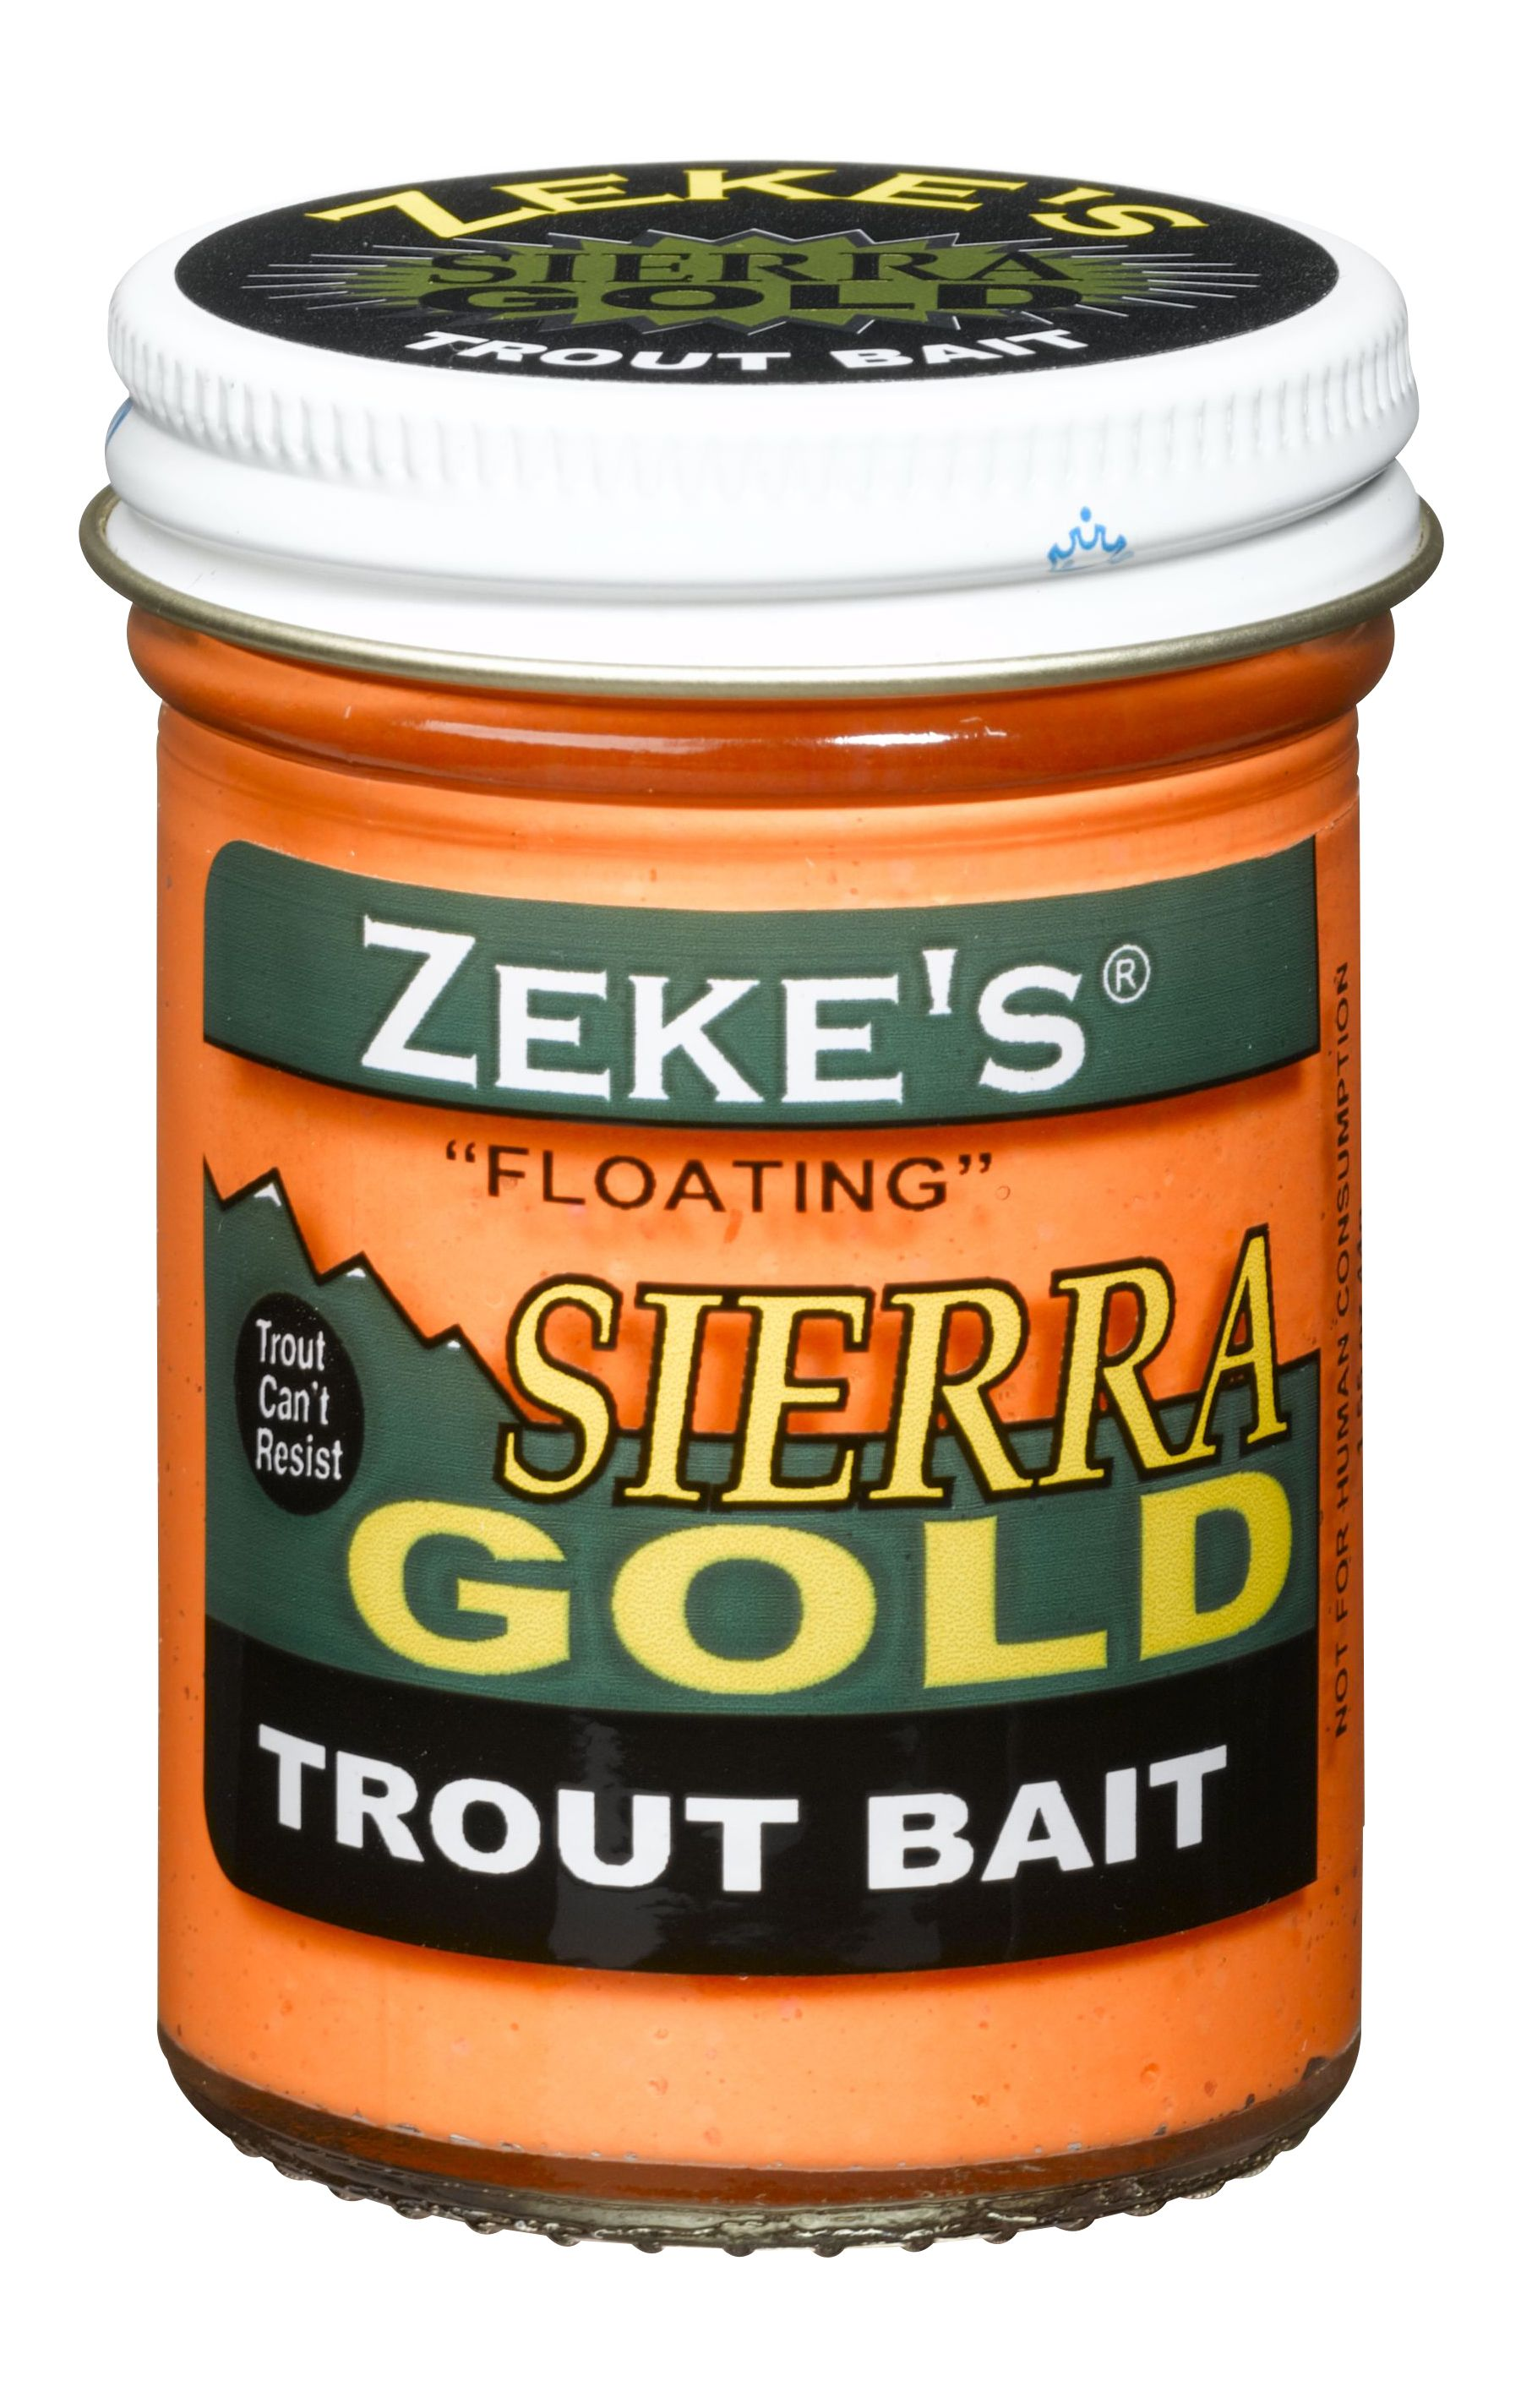 0914 Zeke's Sierra Gold Floating Trout Bait - Orange